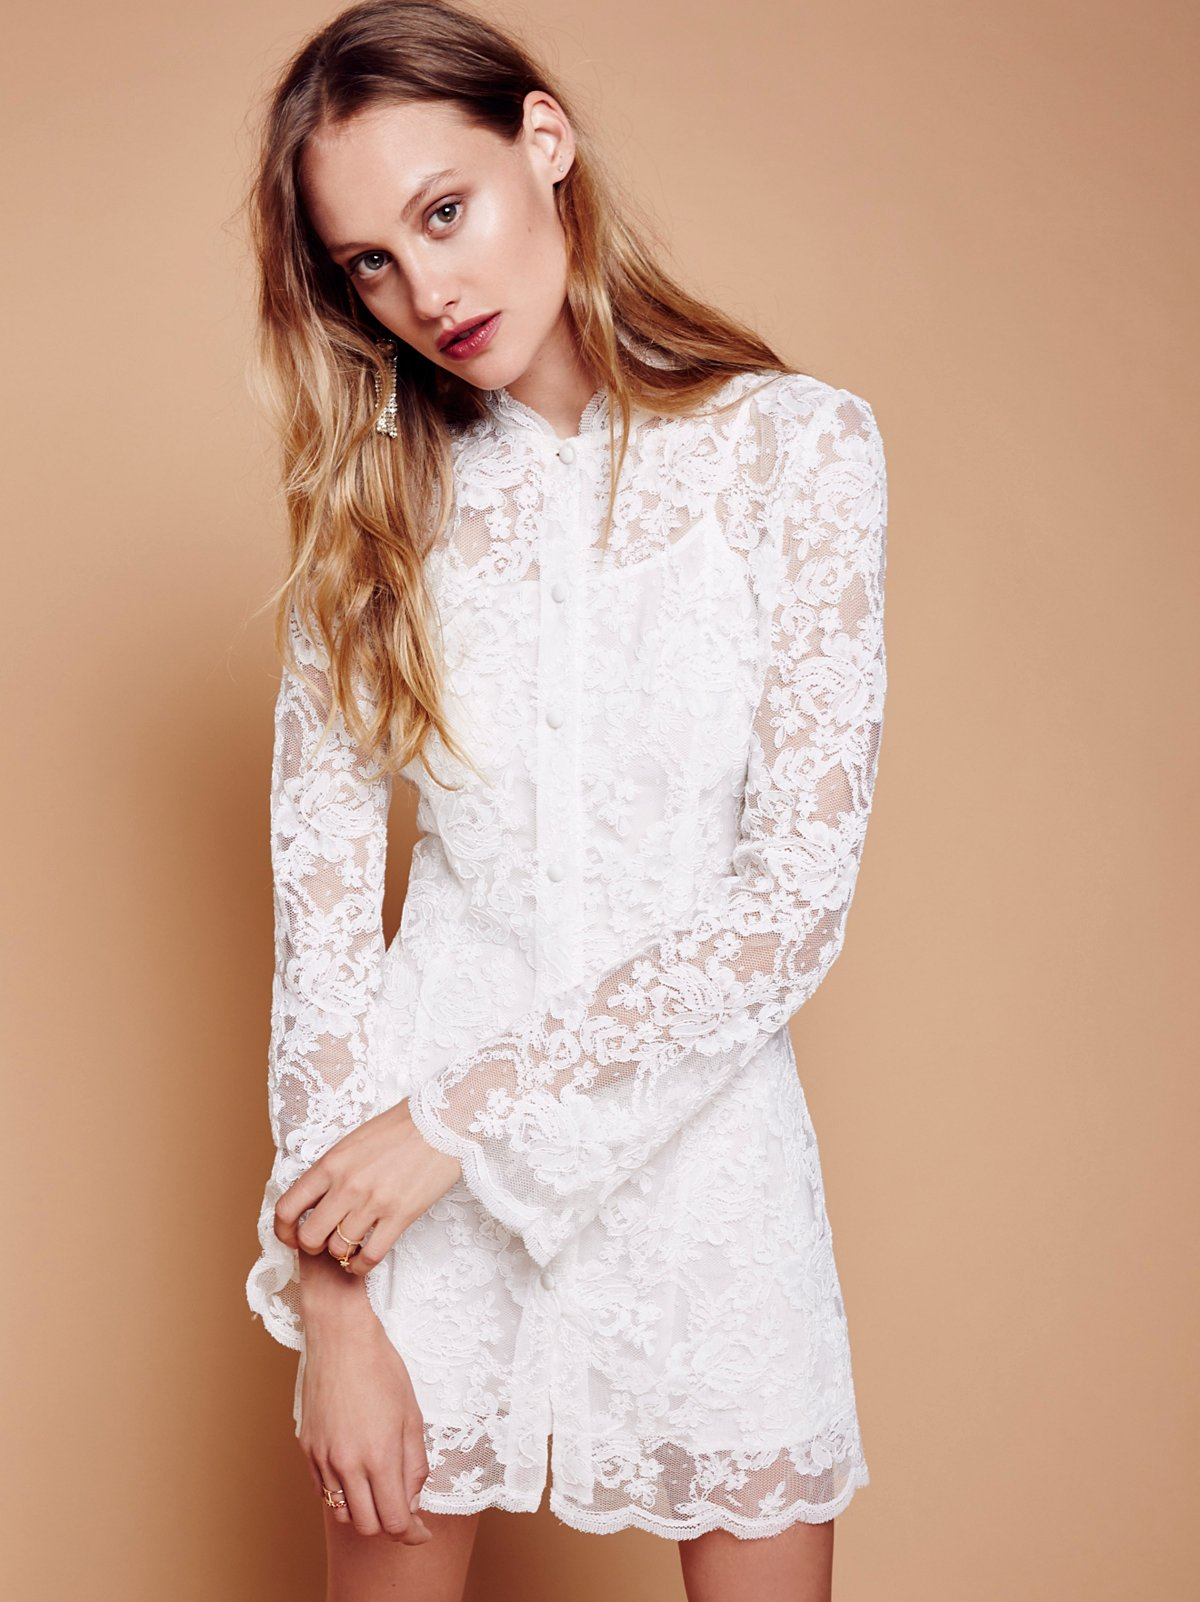 14 wedding dresses that actually aren't wedding dresses at all